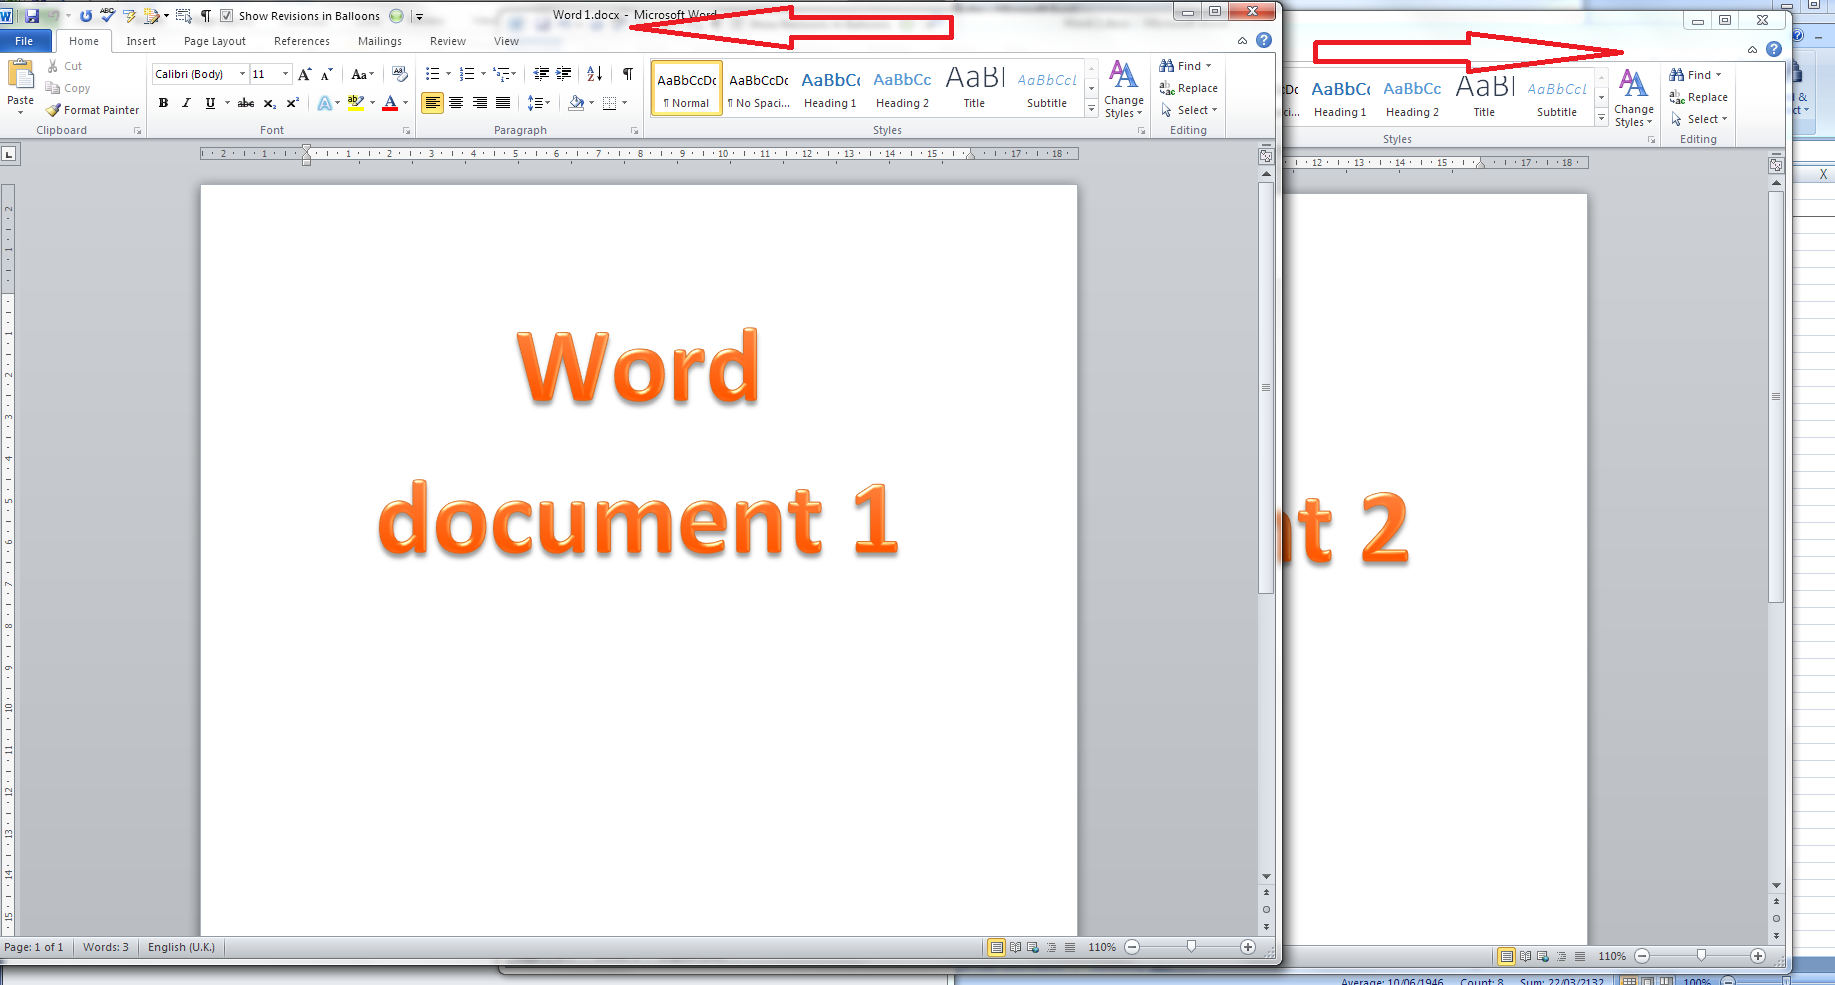 worksheet Excel Worksheet View how do i view two excel spreadsheets at a time libroediting word documents on one screen